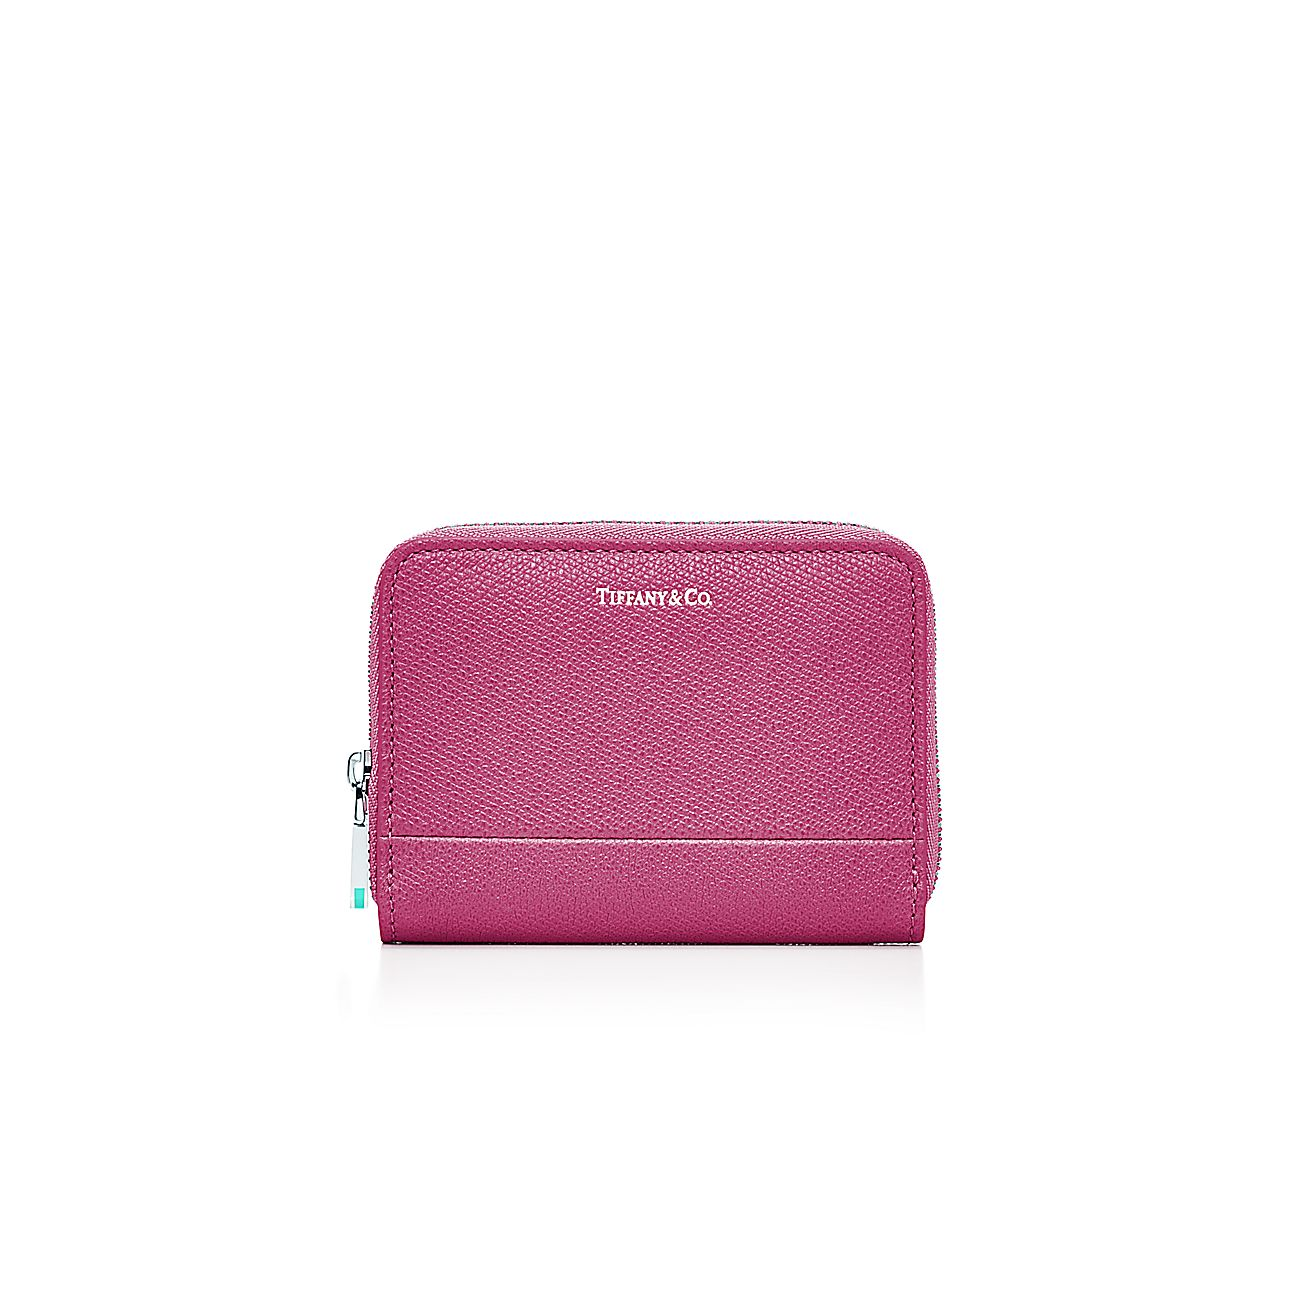 Zip card case in raspberry textured leather more colors for Tiffany business card case